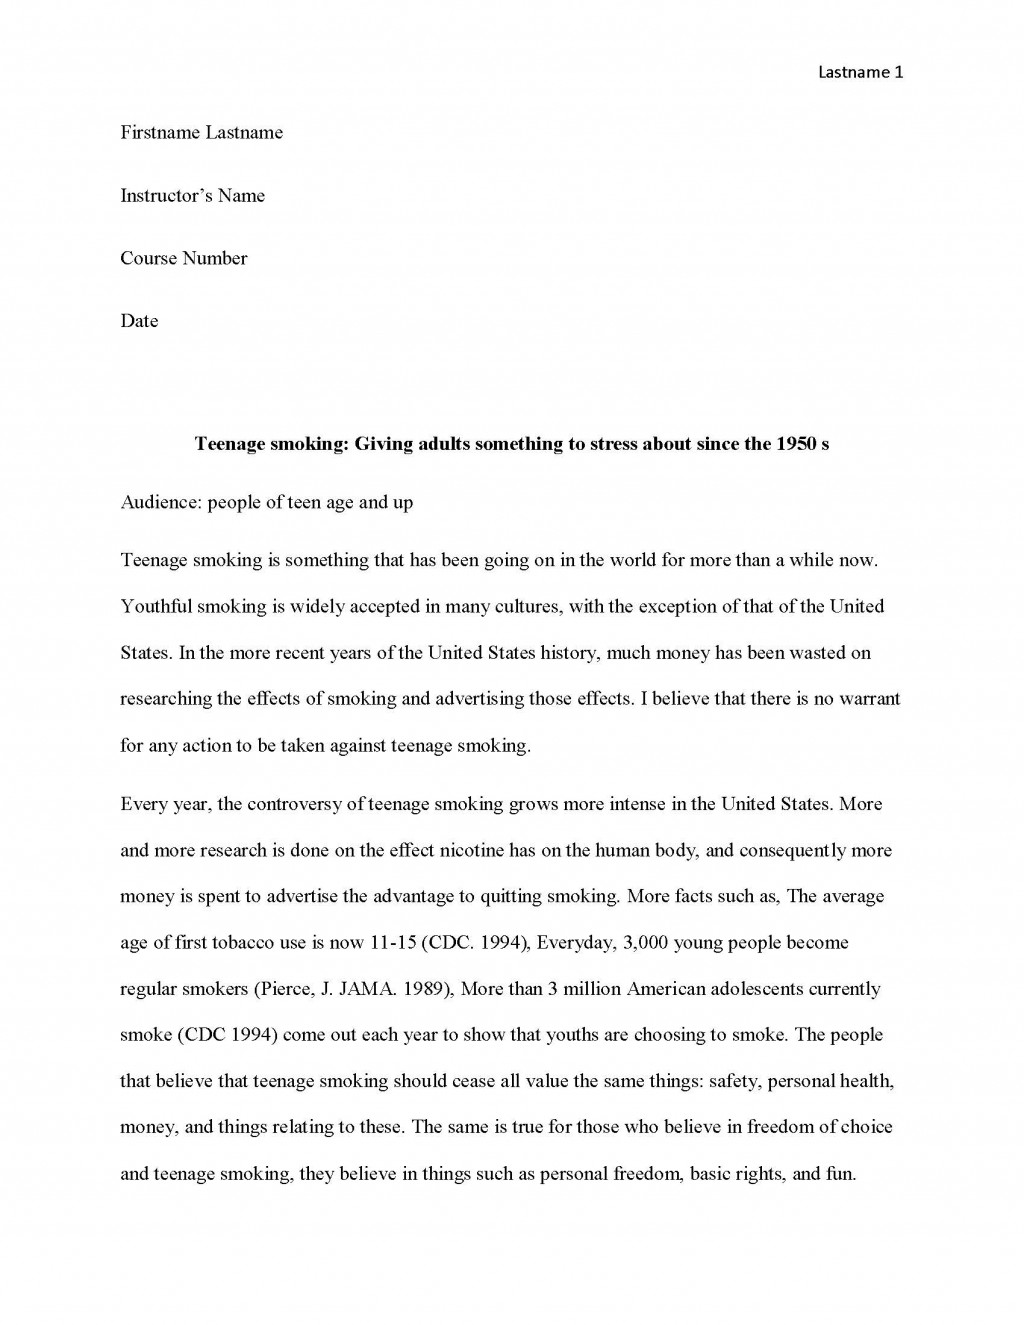 020 College Essay Word Limit Teen Smoking Free Sample Page 1 Impressive Apply Texas 2019 Large